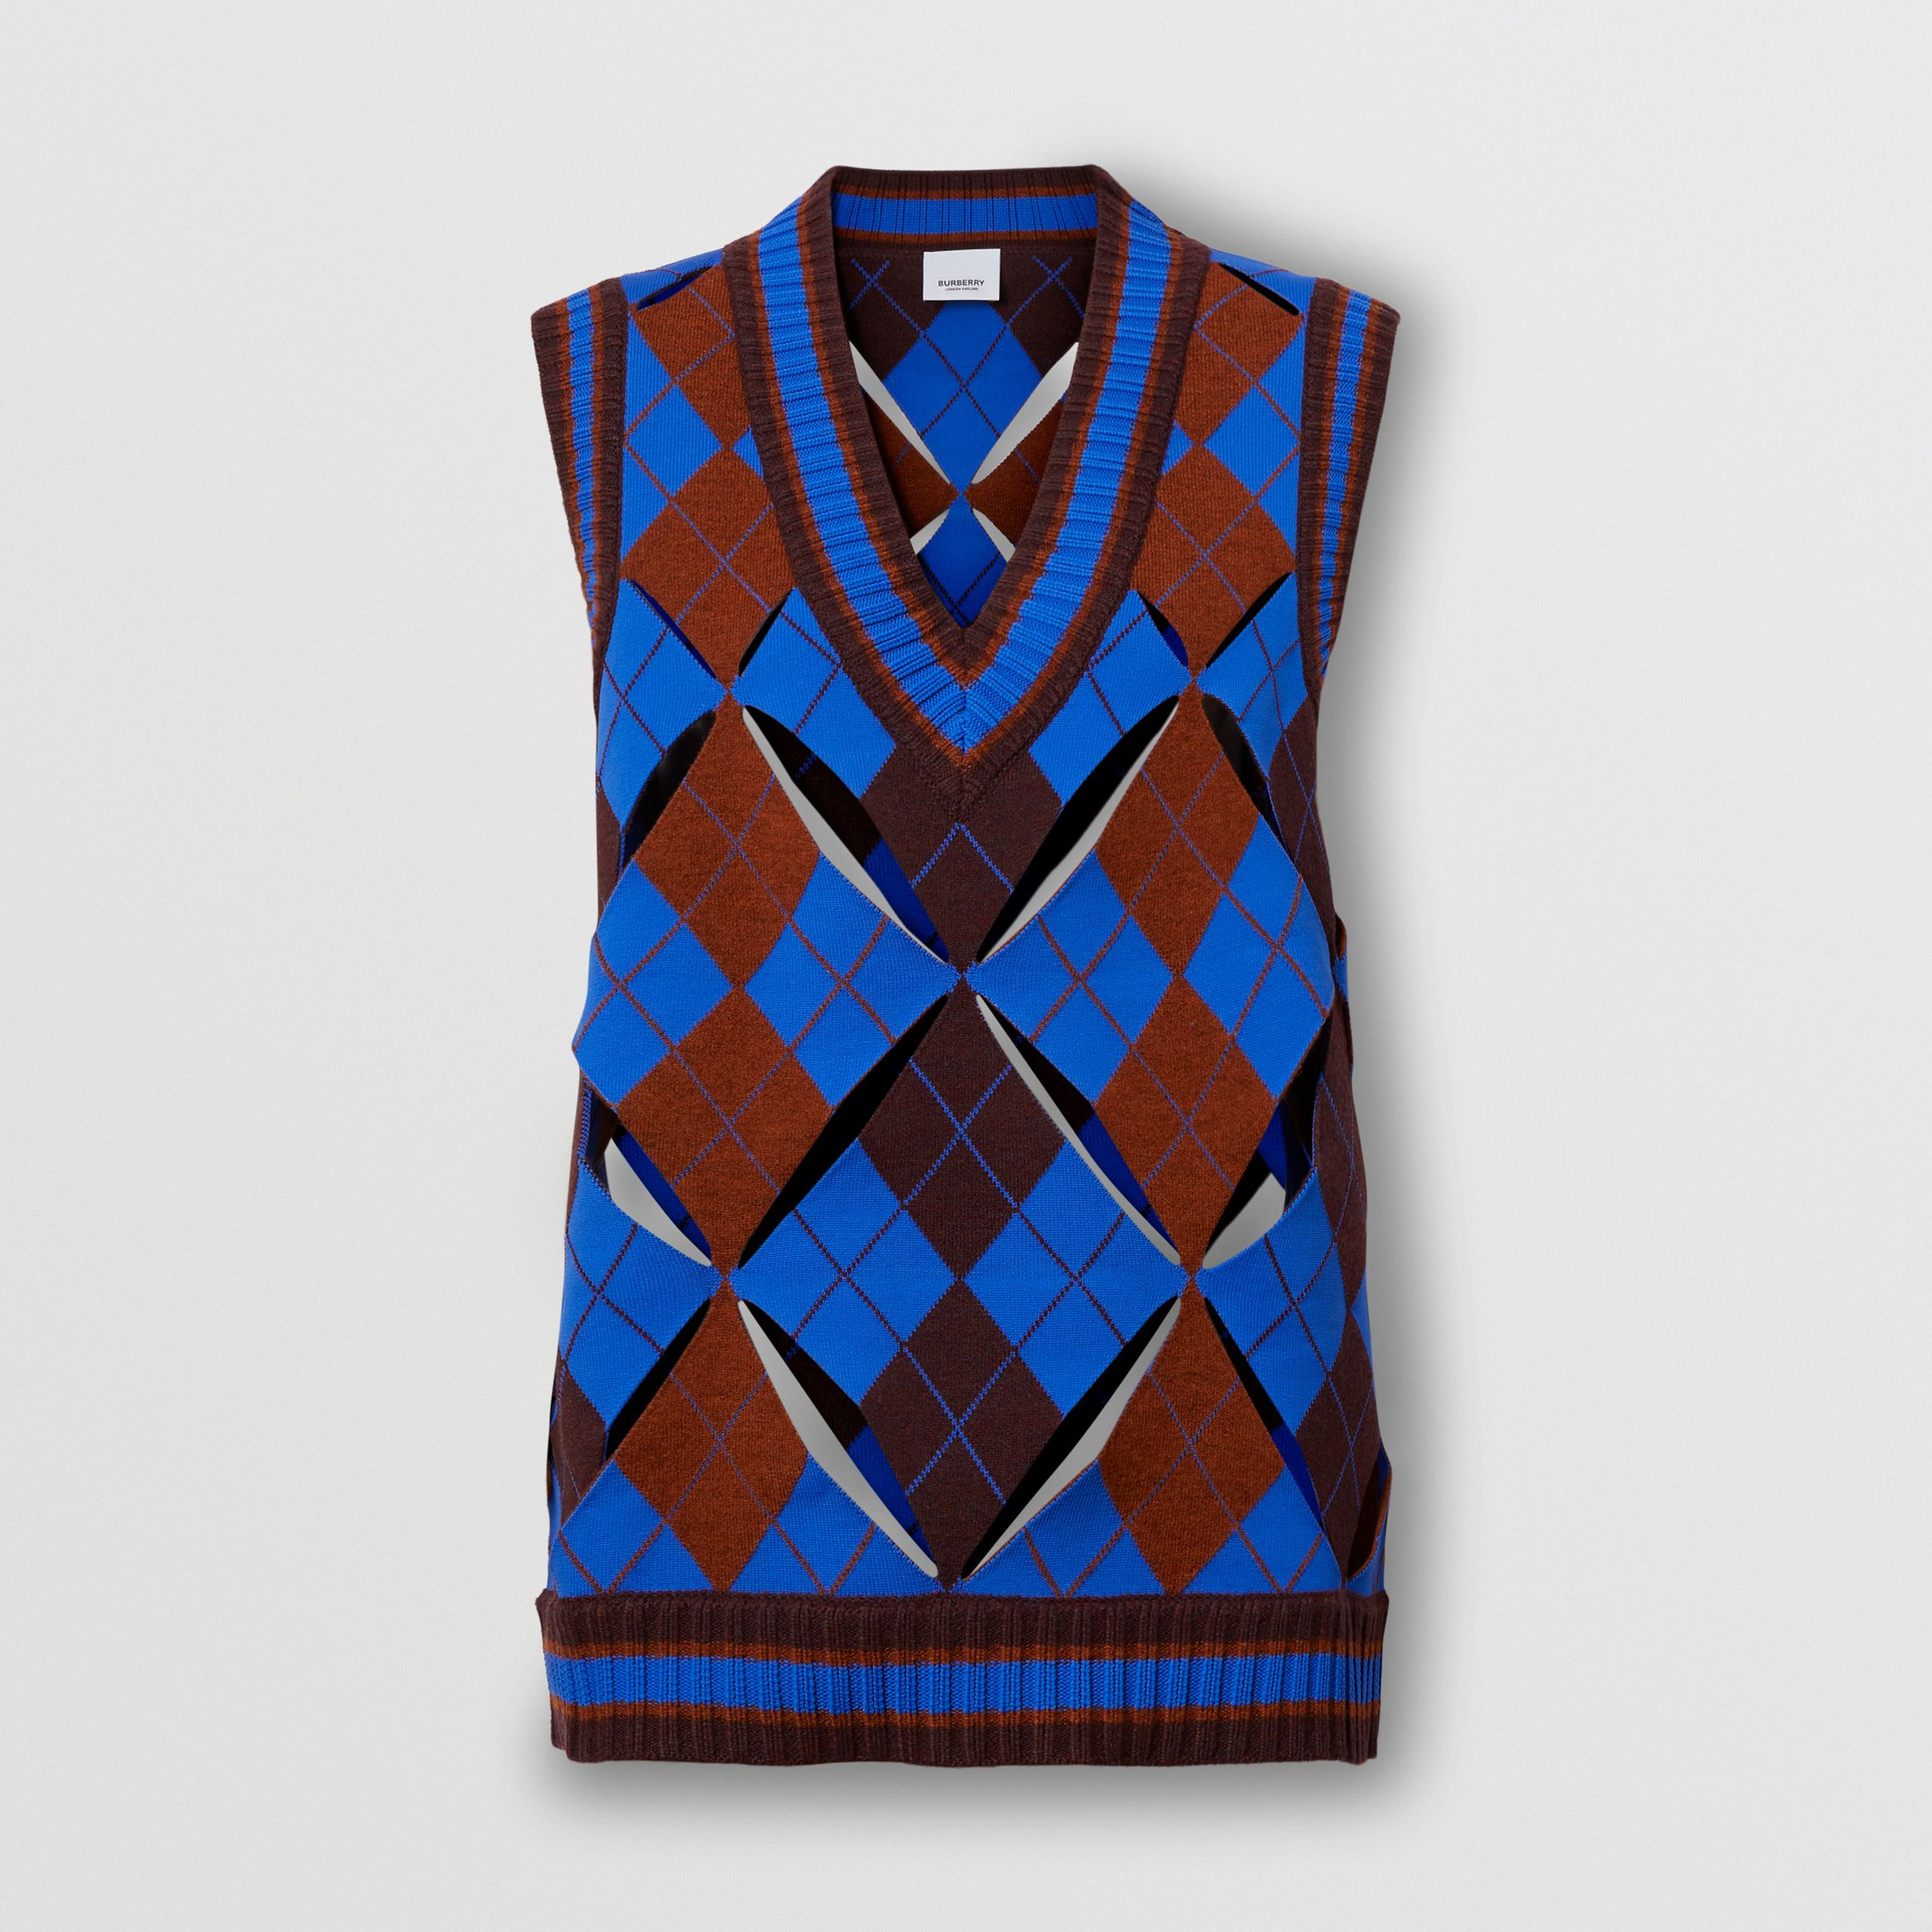 Cut-out Detail Argyle Technical Wool Jacquard Vest in Bright Blue - Women | Burberry - 1